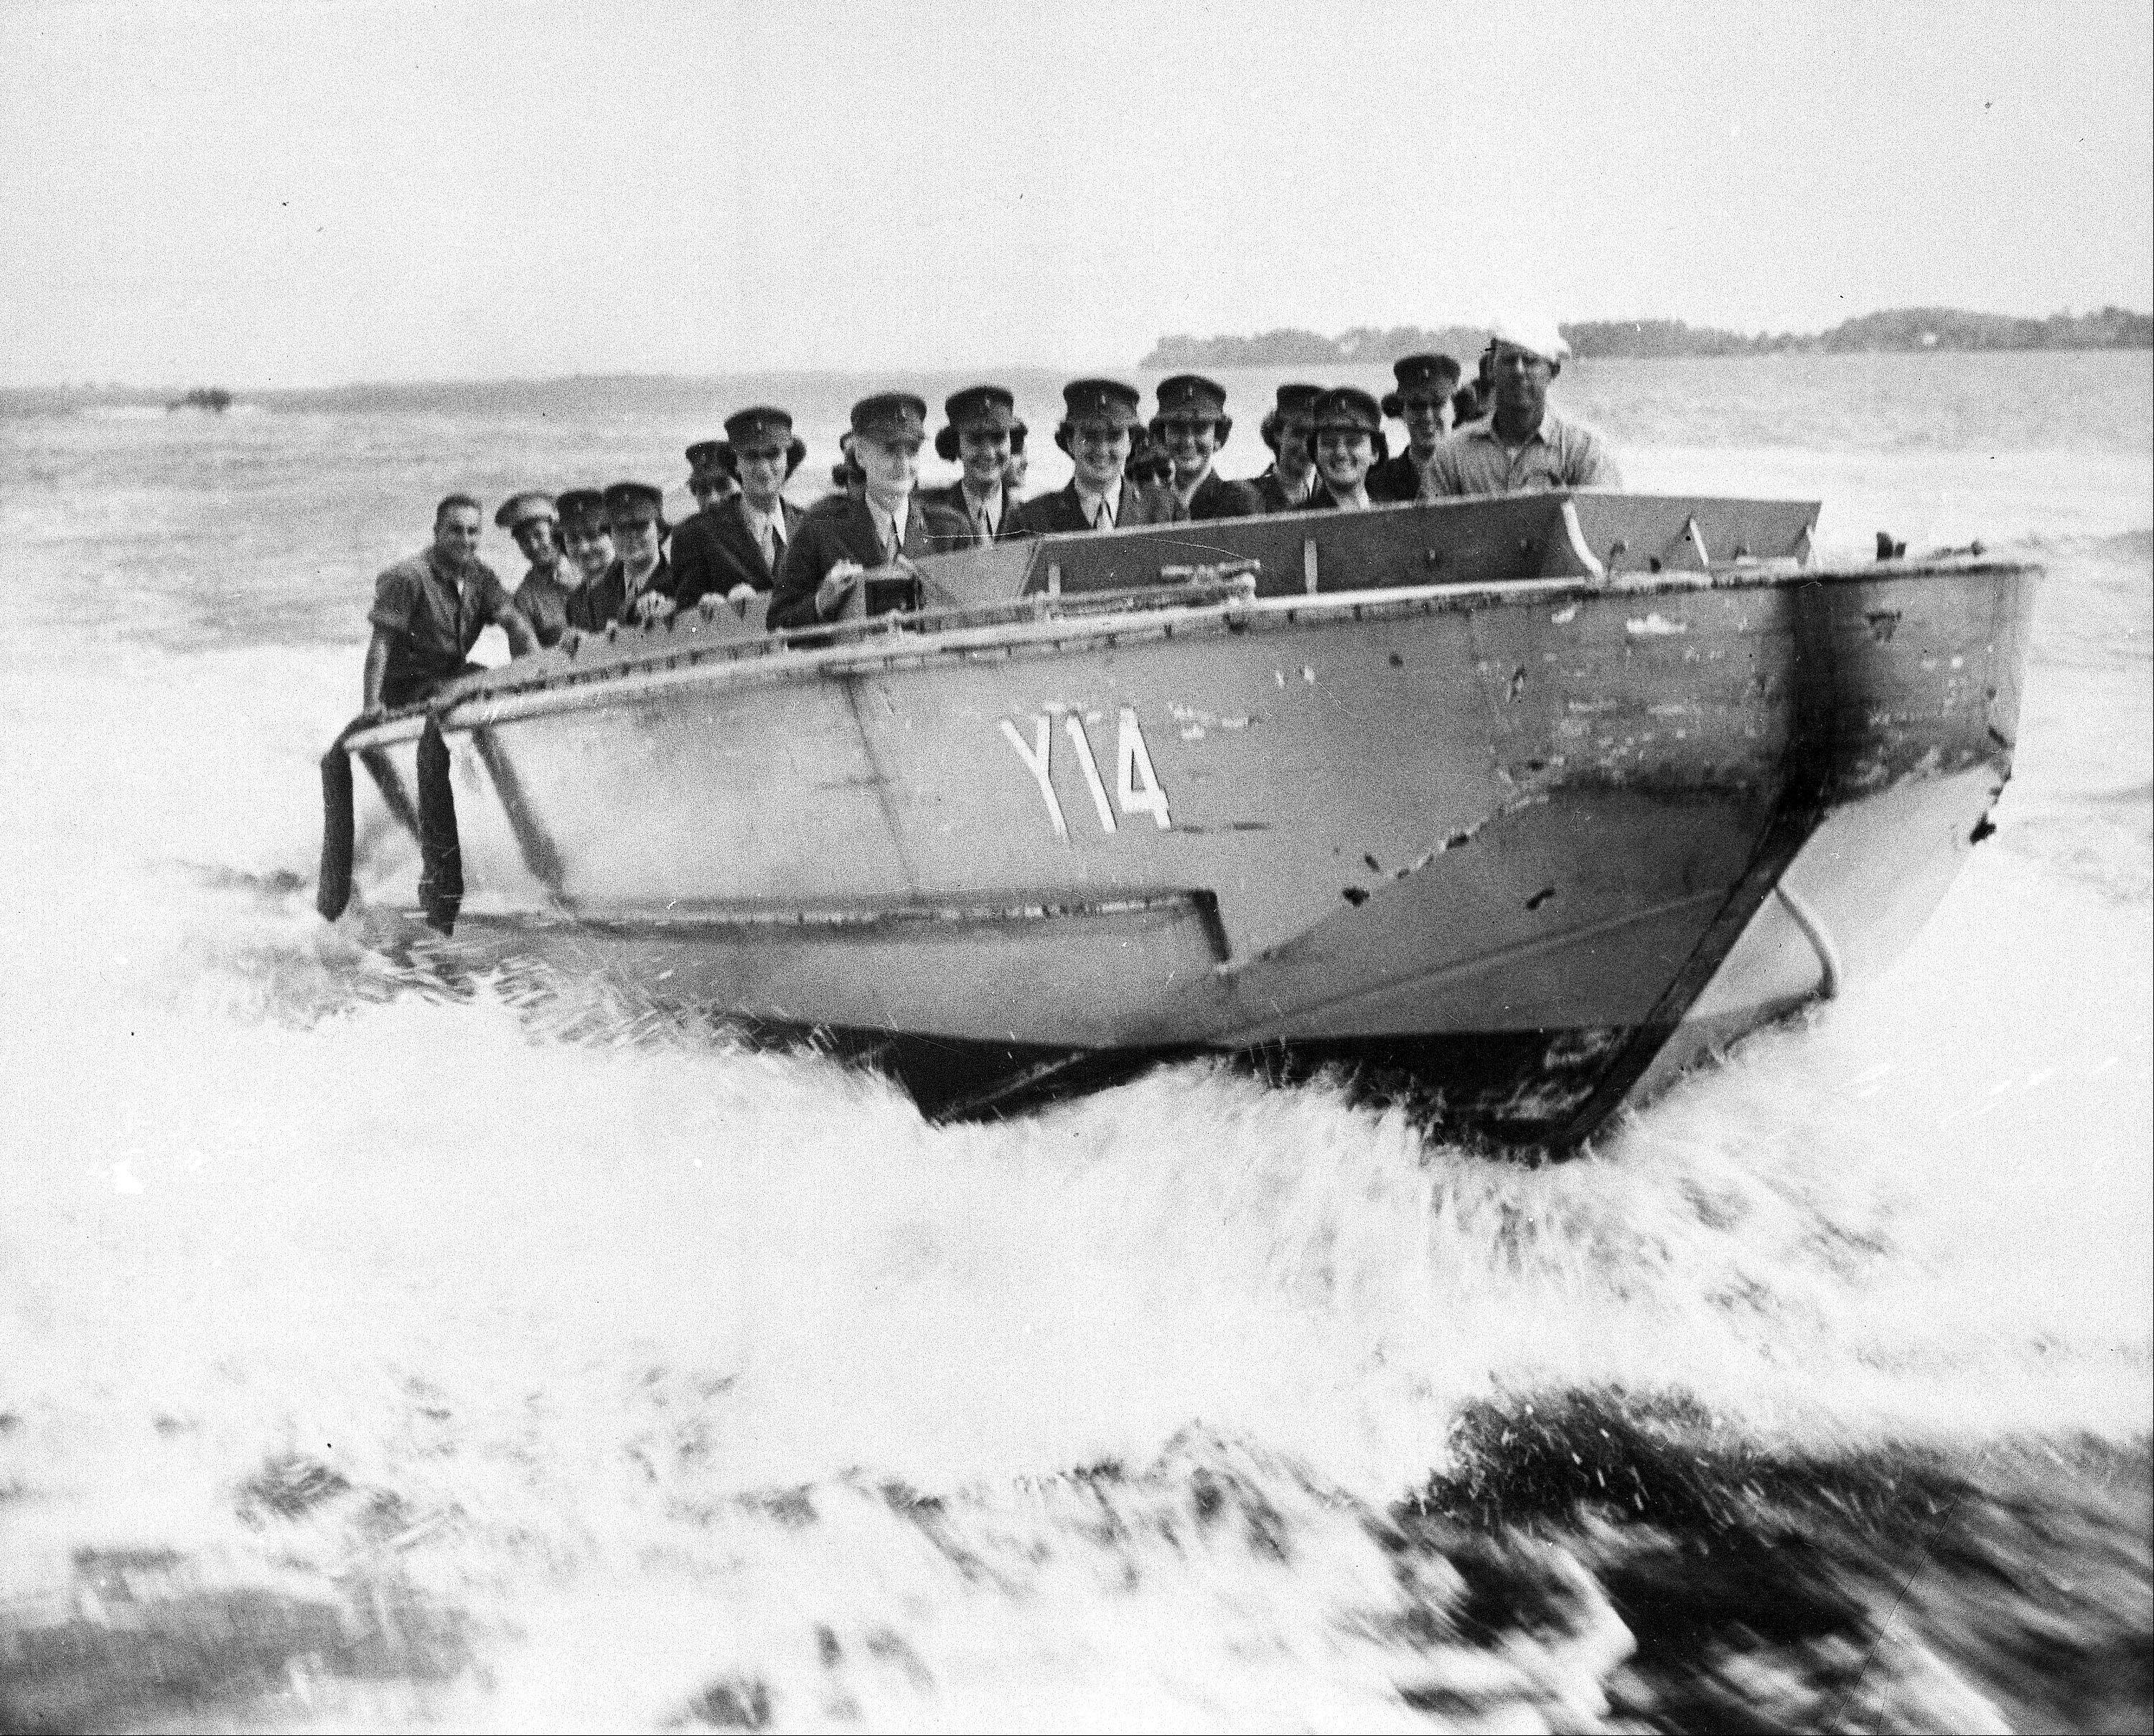 Oct. 2, 1943: Marine Corps Women Reserves undergoing training at Camp Lejeune, New River, N.C., ride in a landing boat of the type that were used by the Marines in landing operations in the South Pacific.